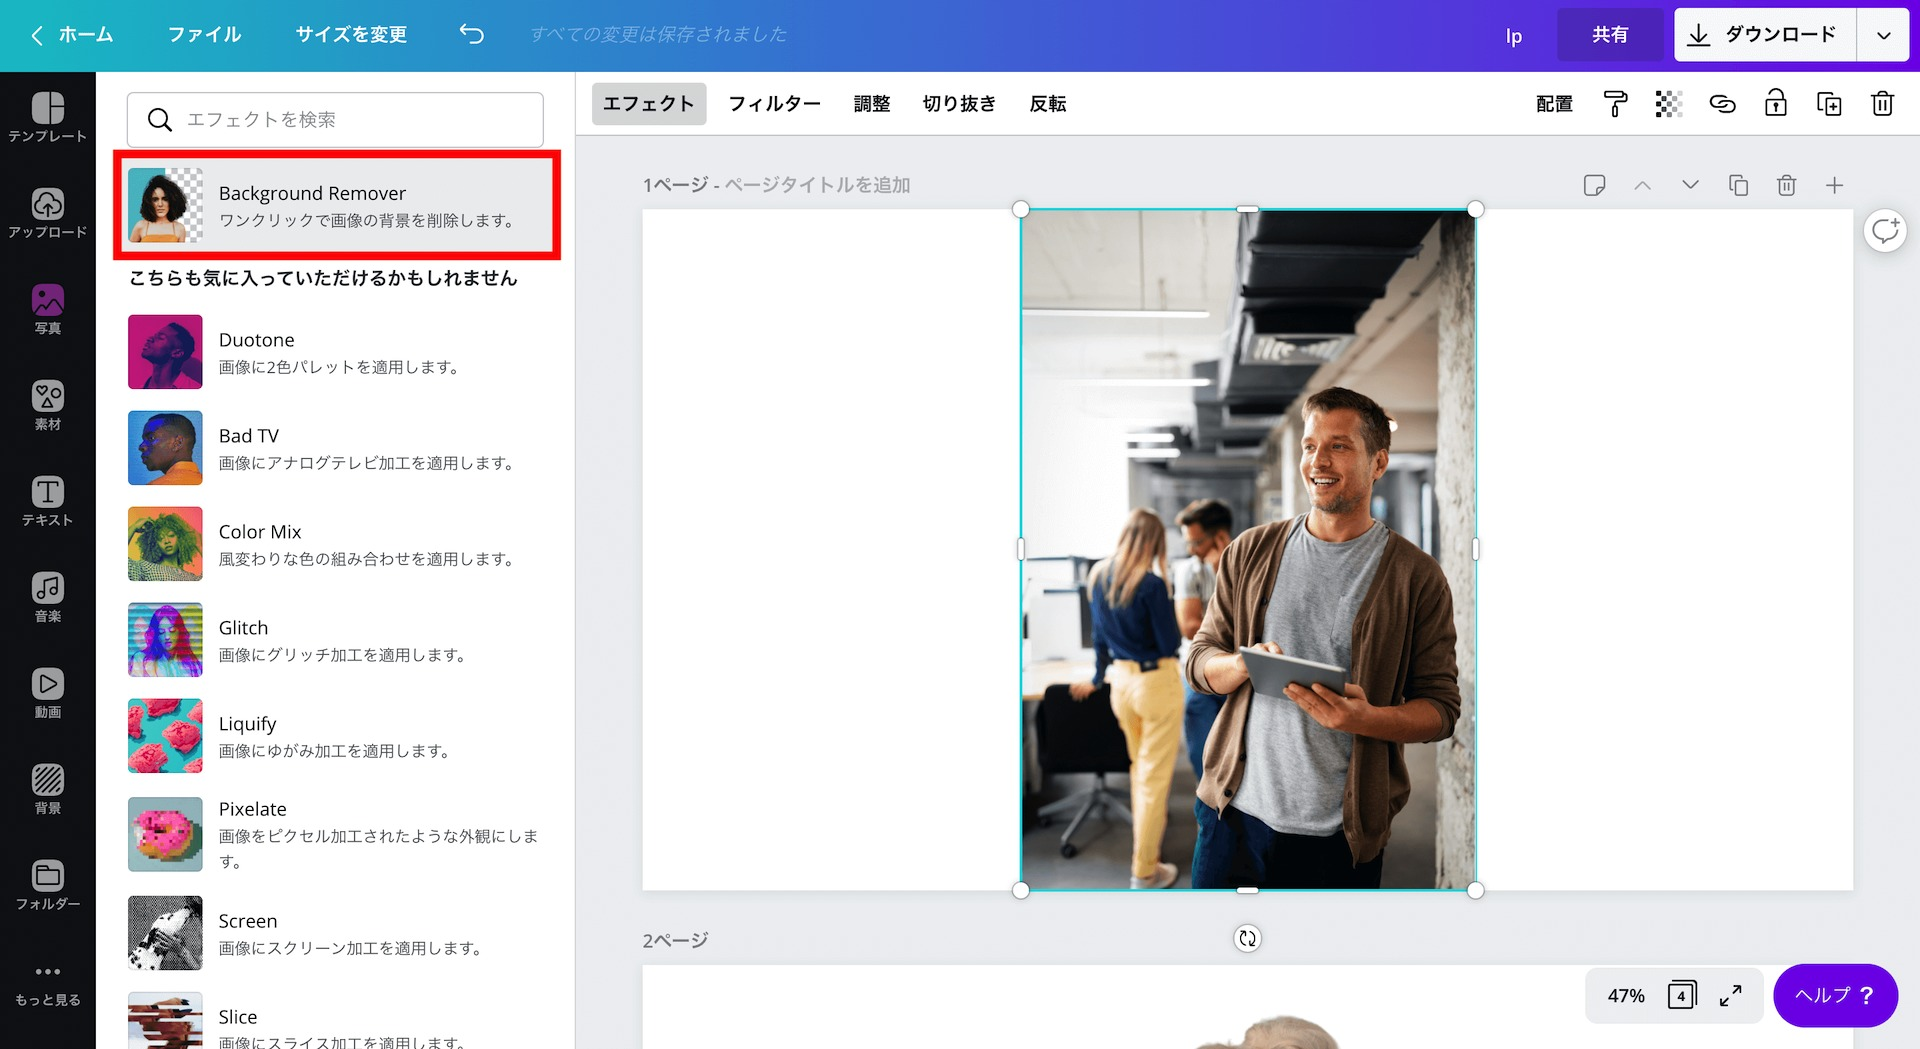 Canvaの「Background Remover」の使い方